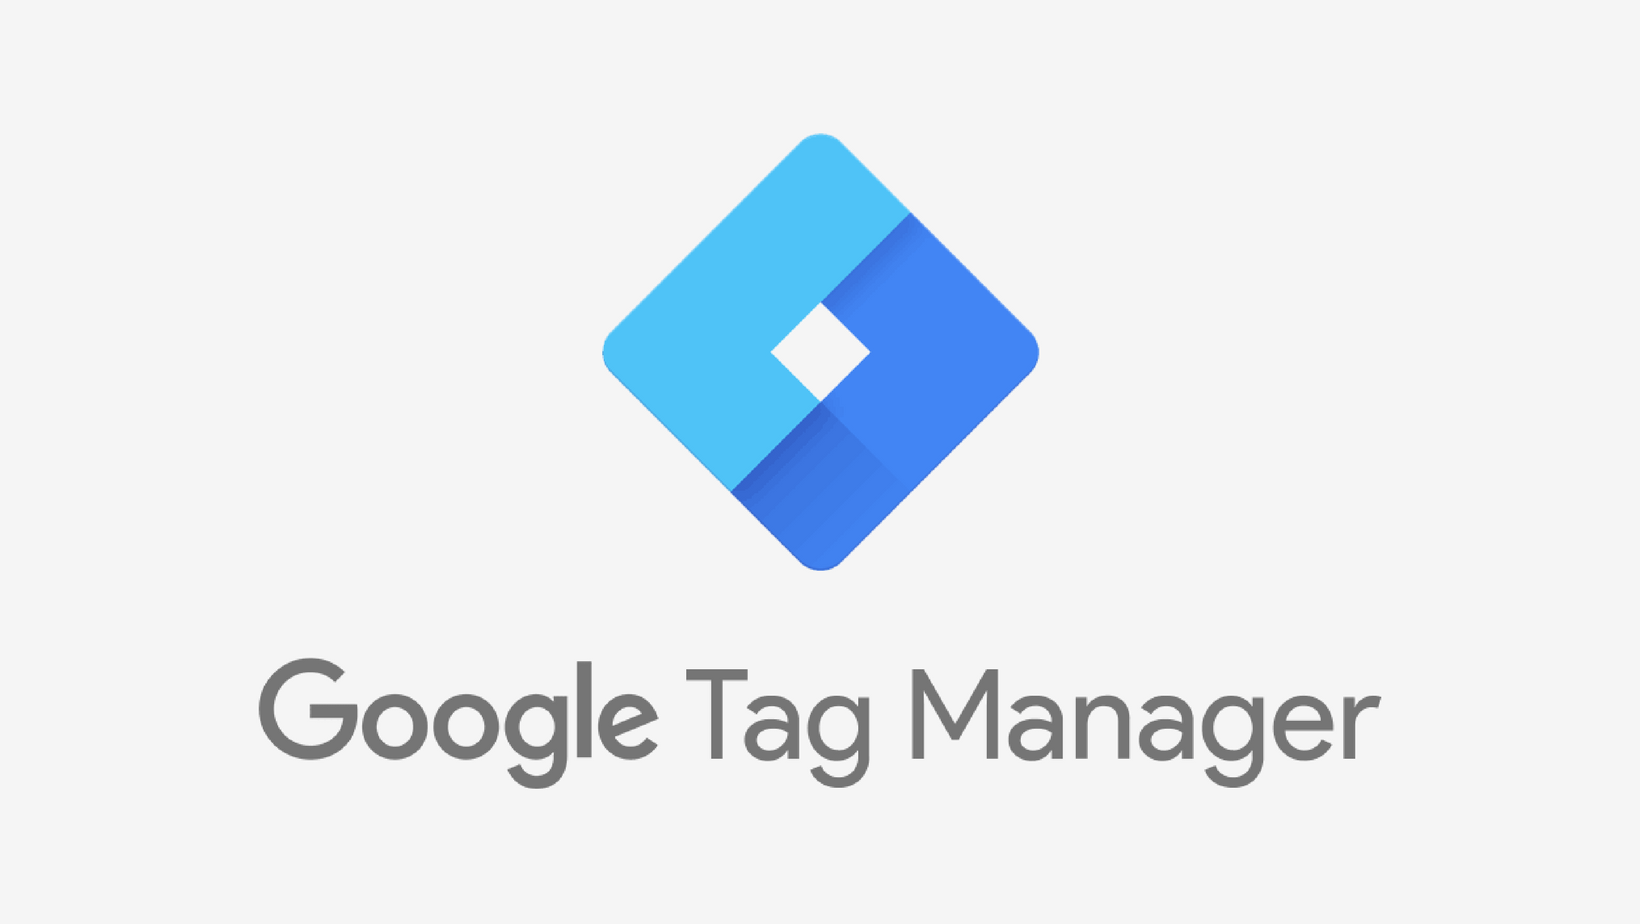 6 Best Google Tag Manager Courses & Training online